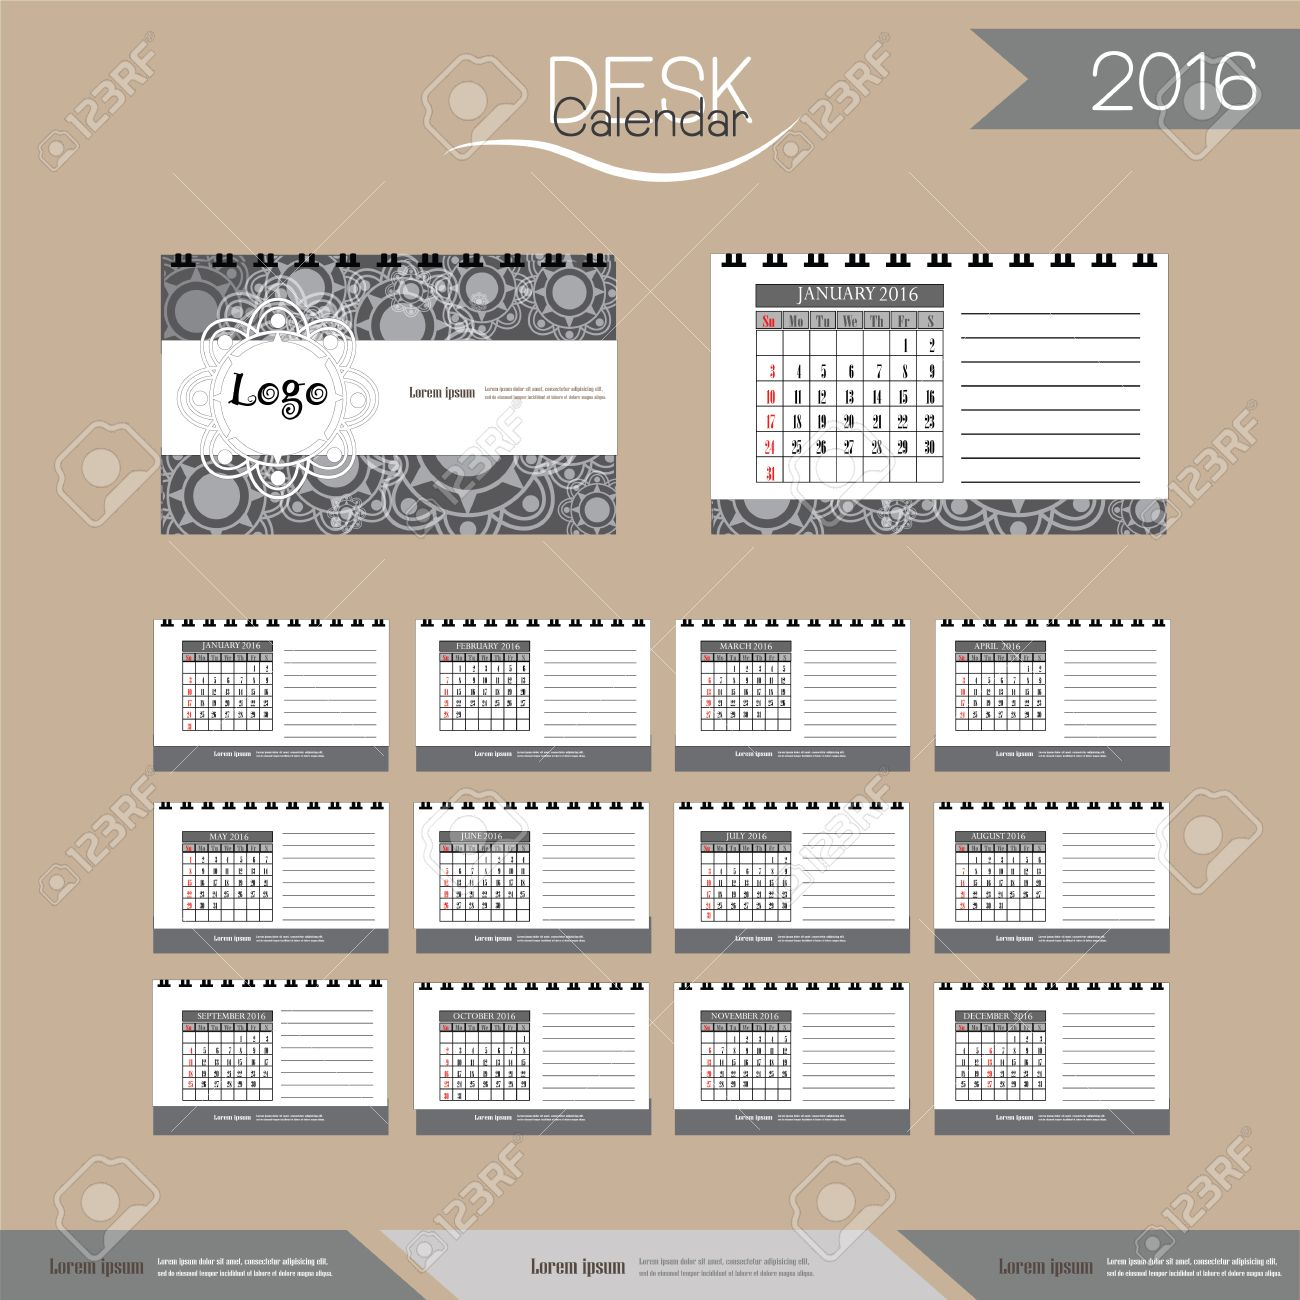 2016 Desk Calendar2016 Calendar Vector Design Template With